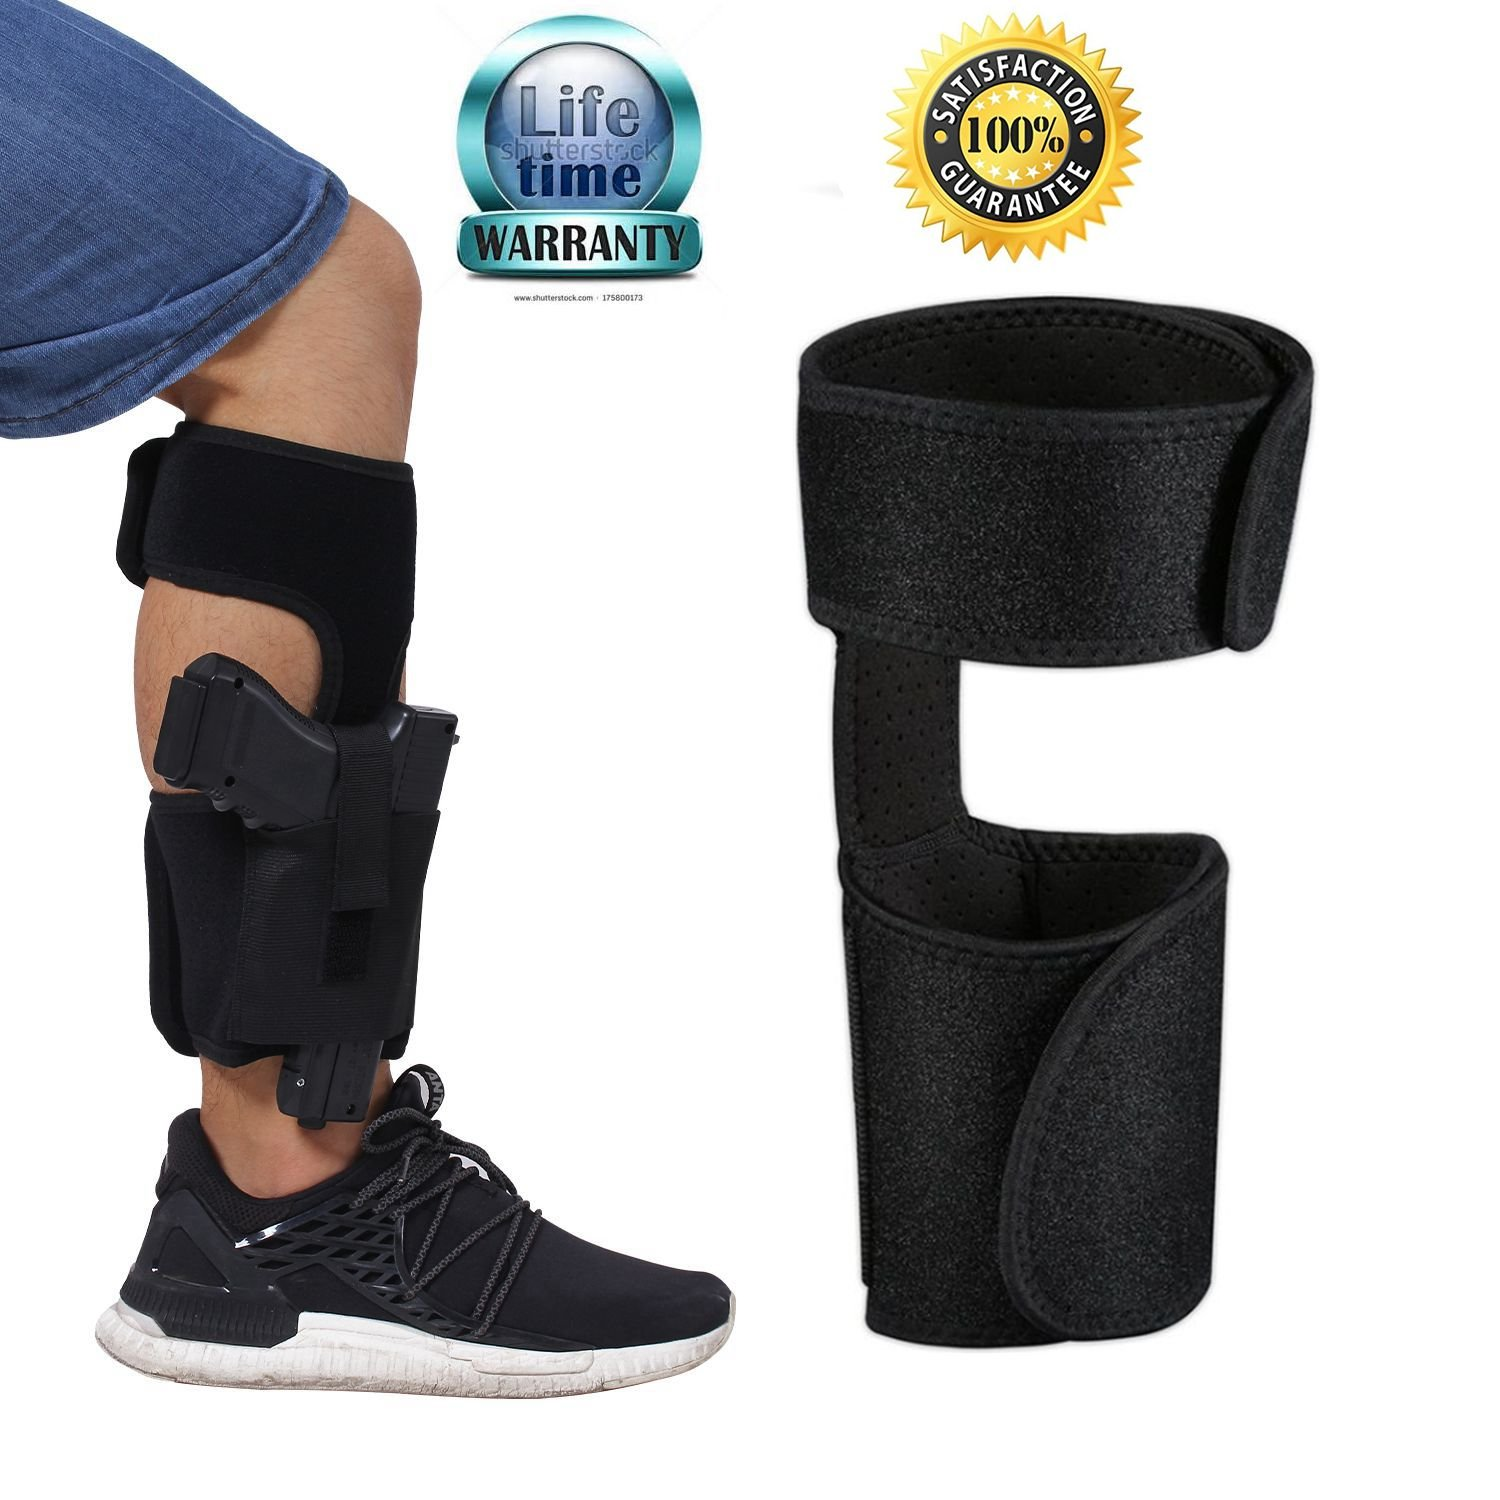 XIAOYI Ankle Holster for Concealed Carry Pistol/Handgun with Adjustable Elastic Secure Strap, Gun Holsters Suitable men and women For Glock 42, 43, 36, 26, S&W Bodyguard .380.38, Ruger LCP, LC9